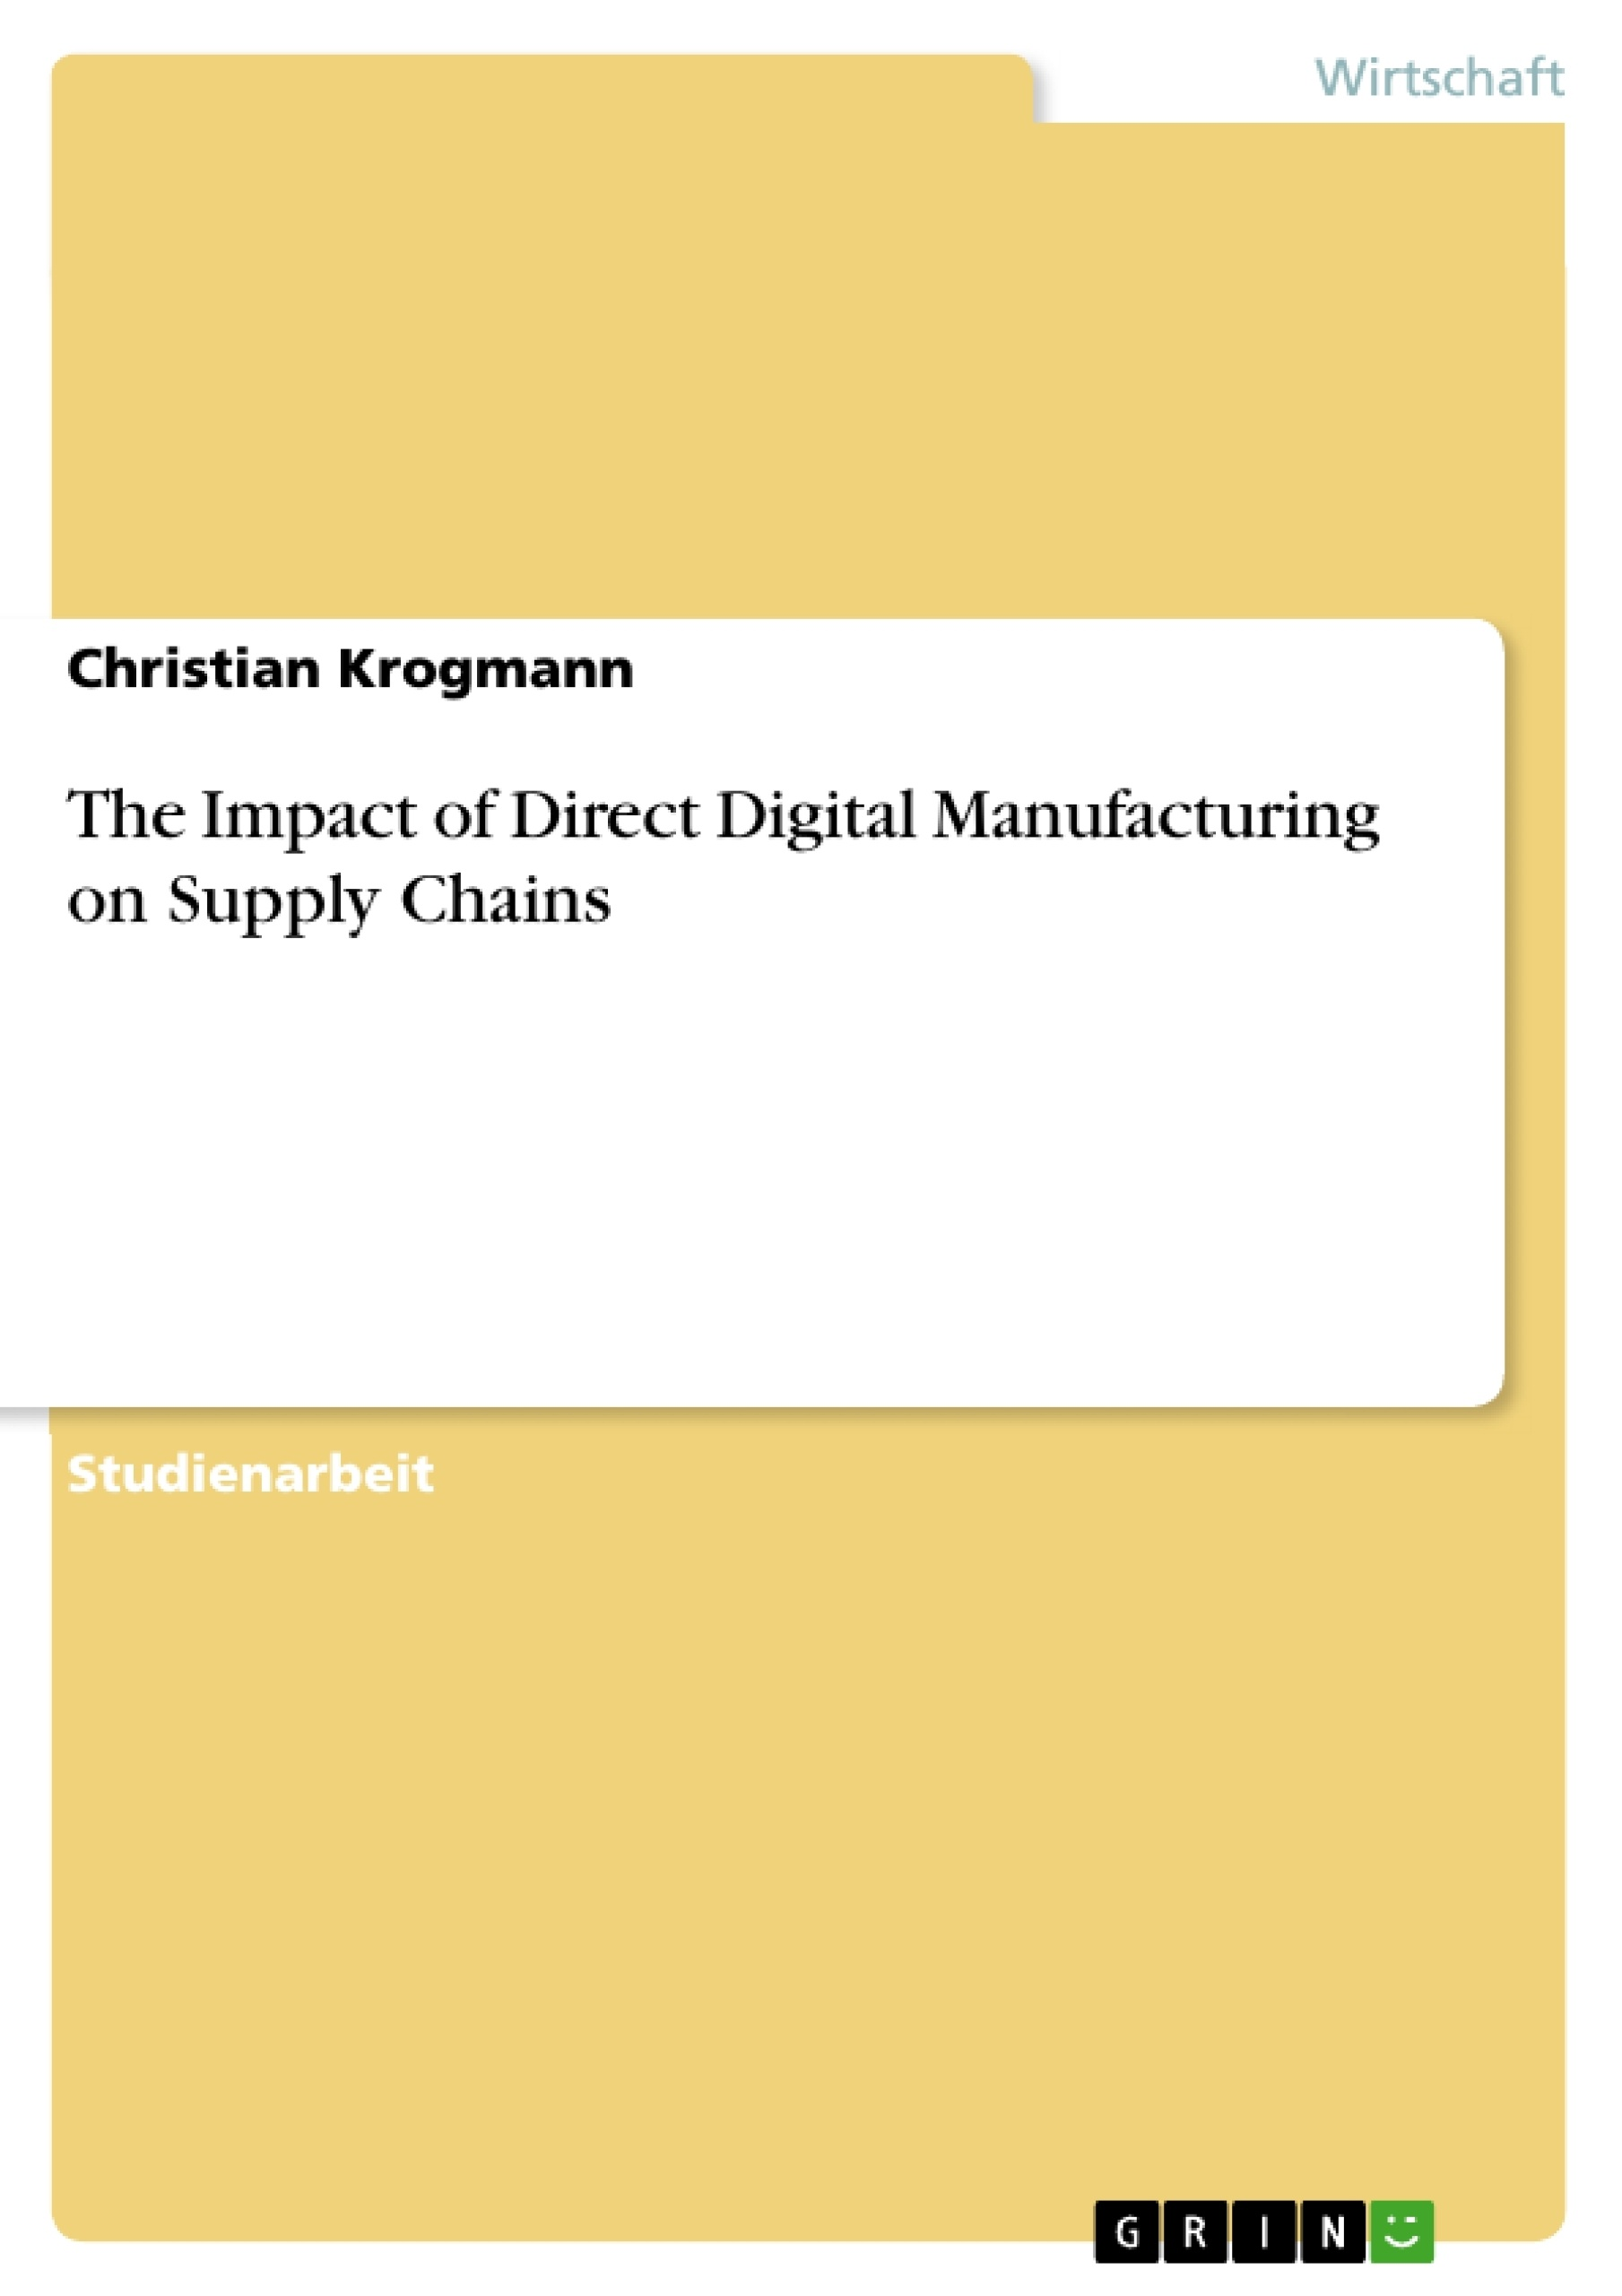 Titel: The Impact of Direct Digital Manufacturing on Supply Chains